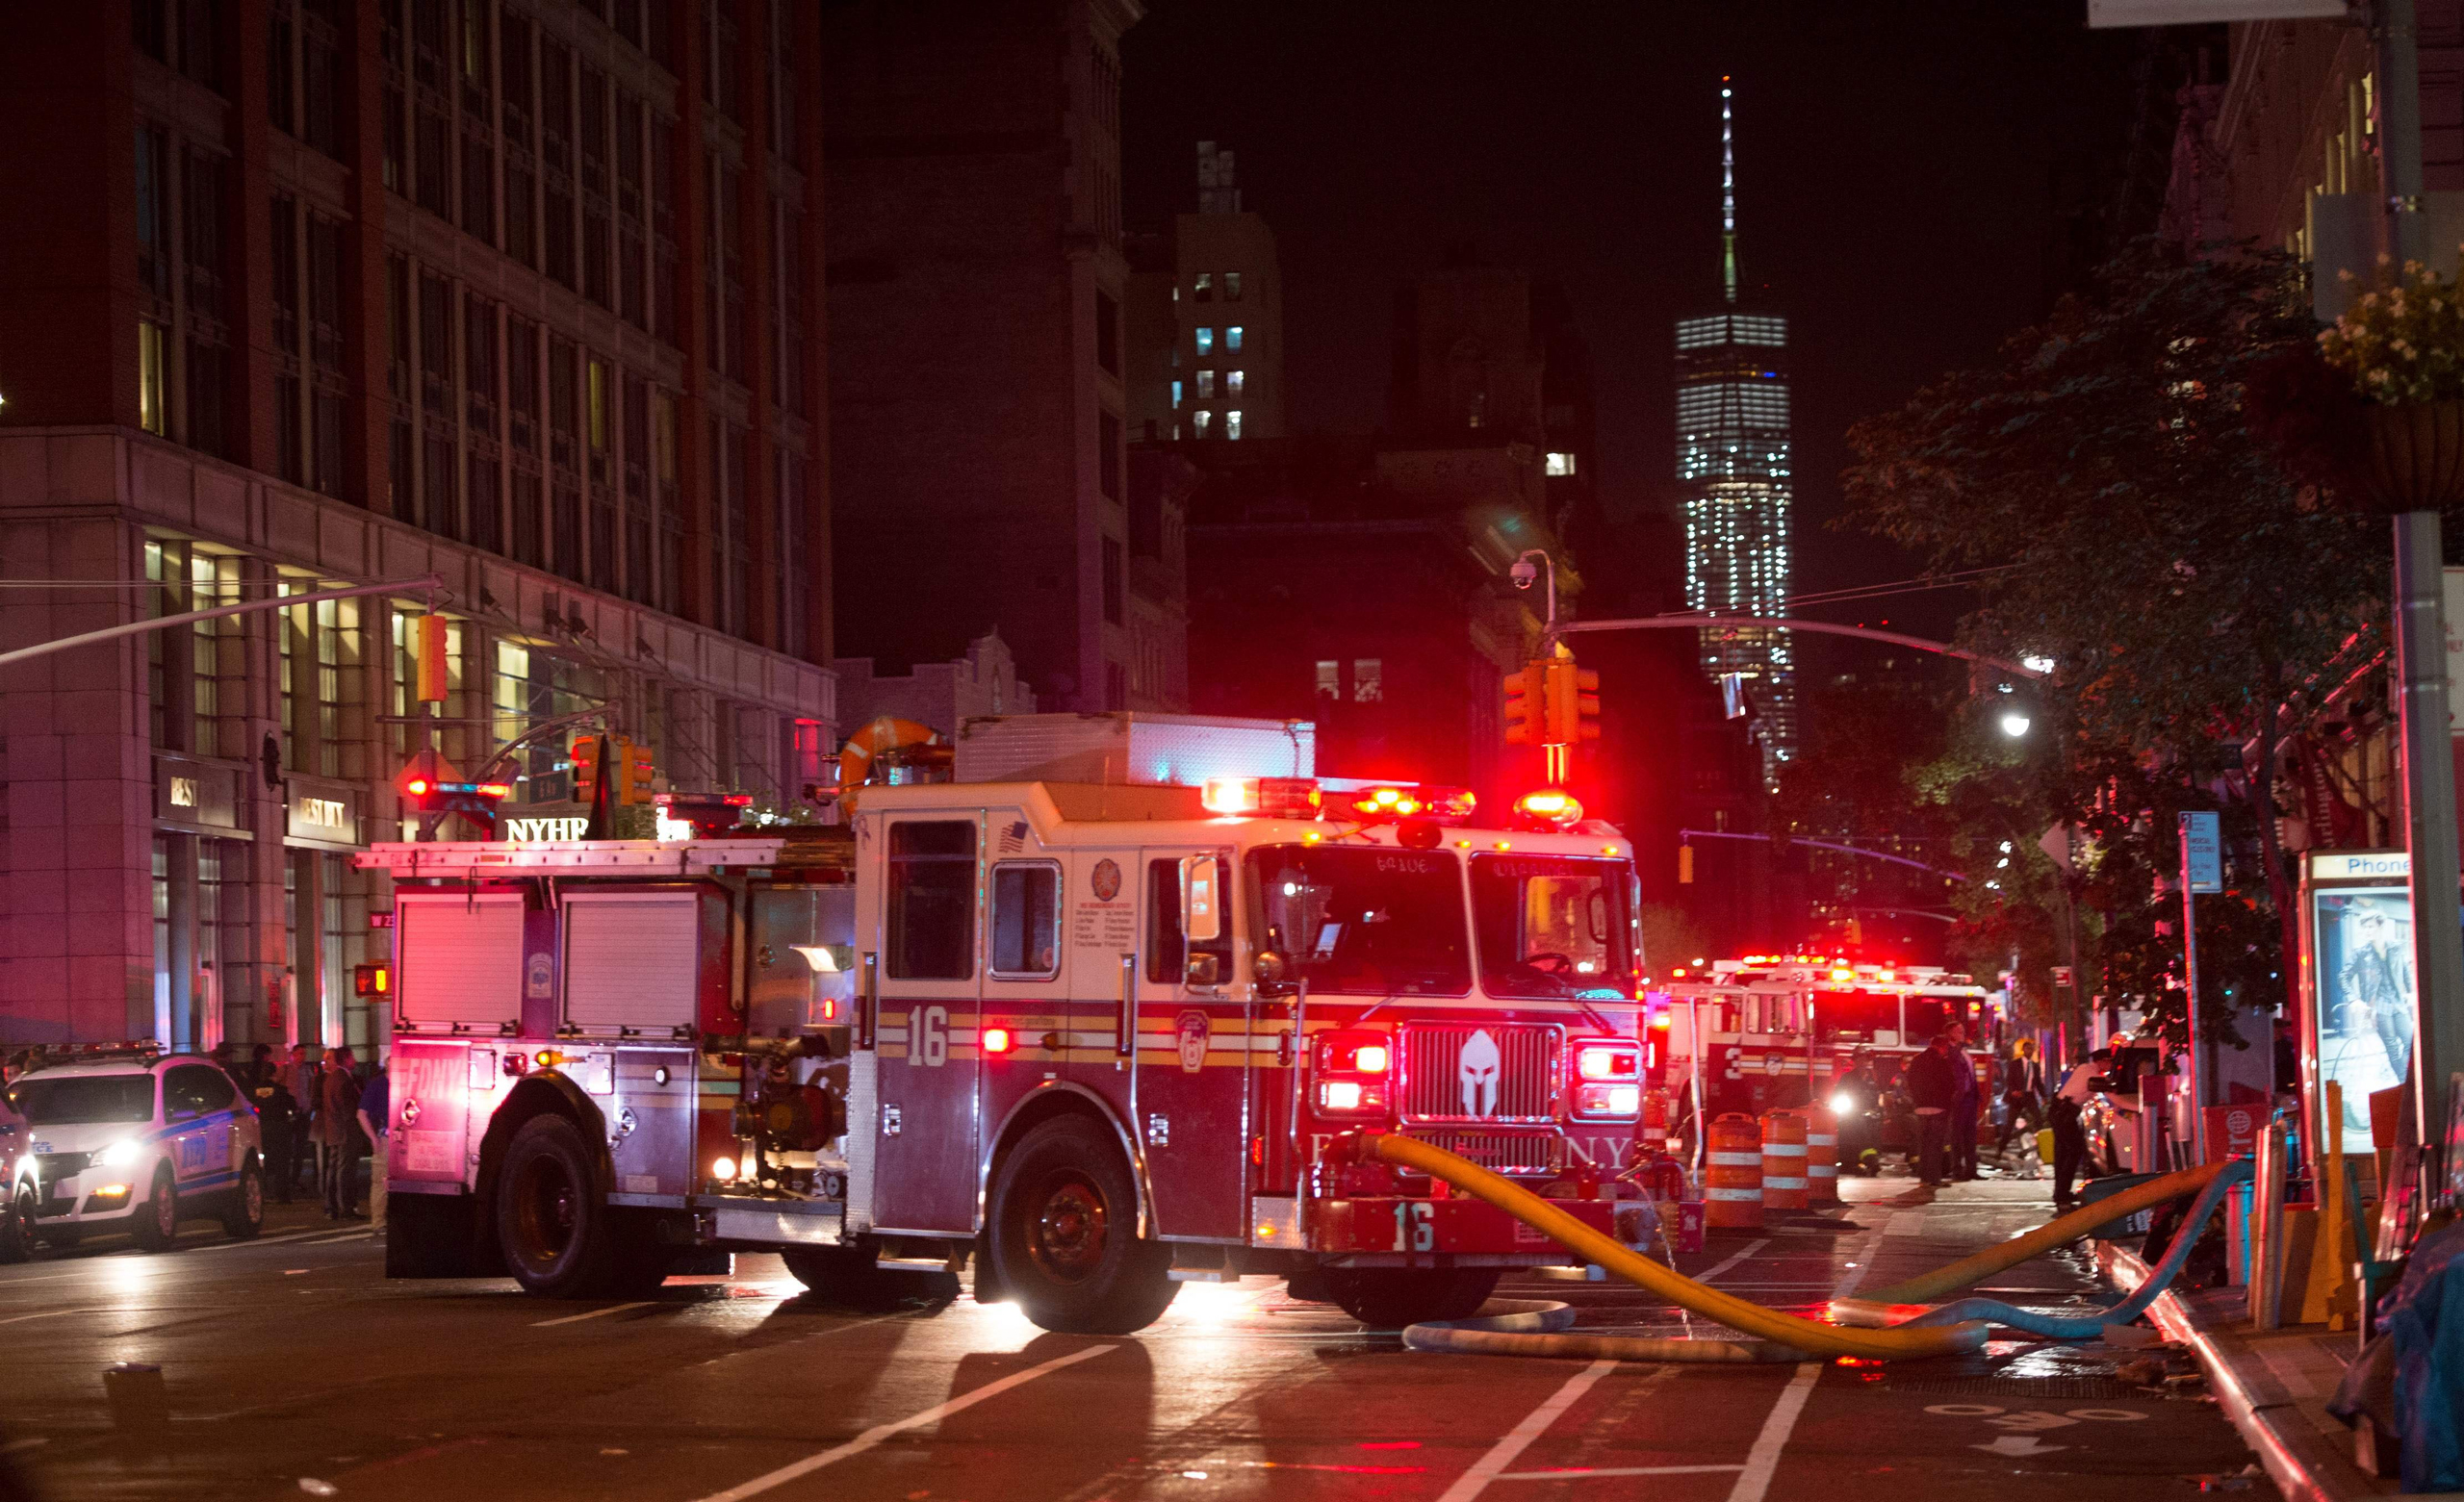 A fire truck is seen near a blocked off road near the site of an alleged bomb explosion on West 23rd Street in New York on Sept. 17, 2016.